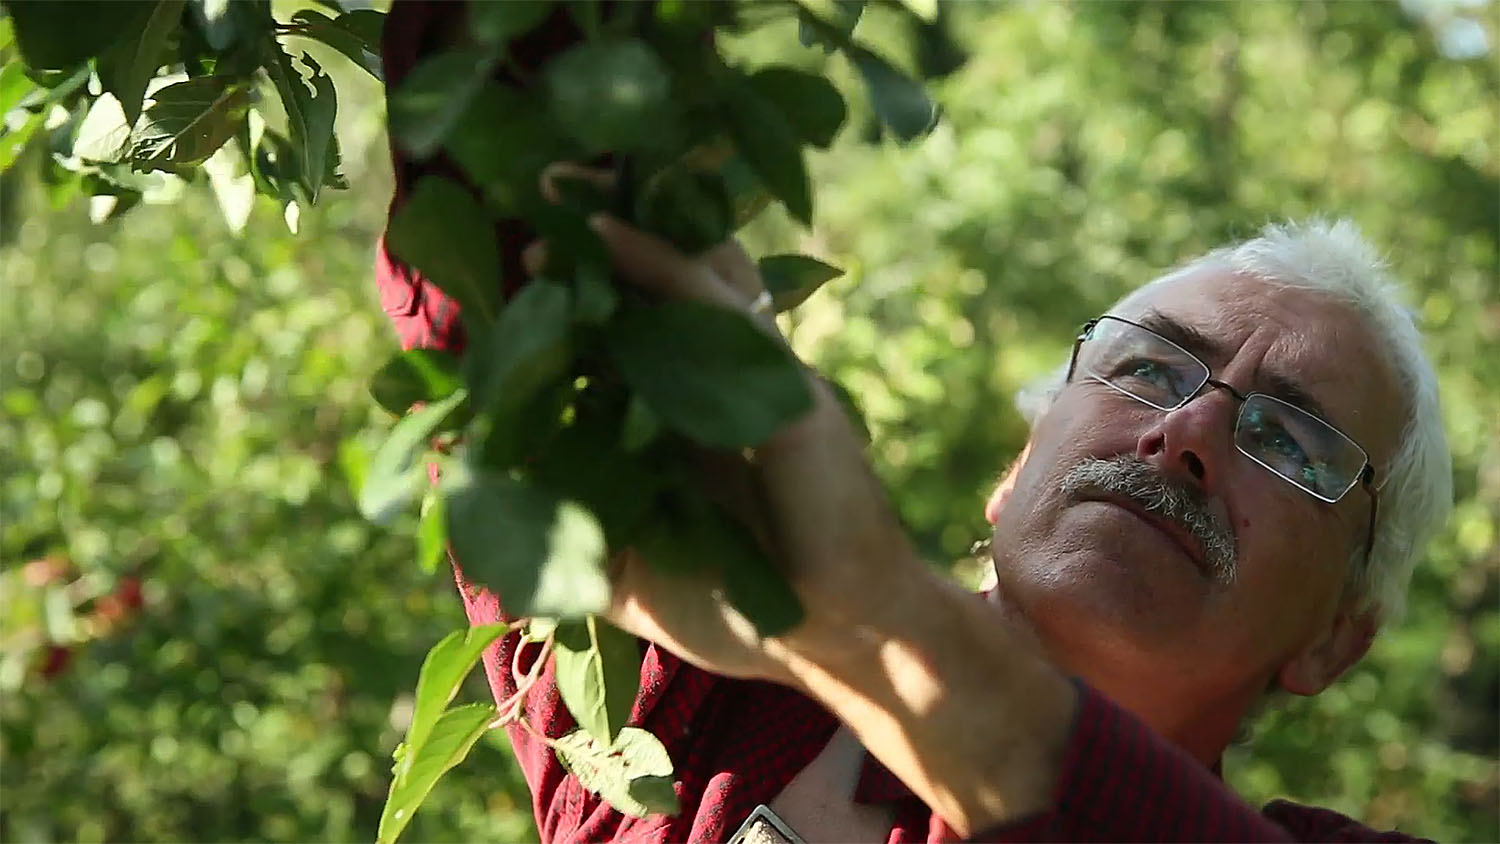 Stefan at home in his orchard